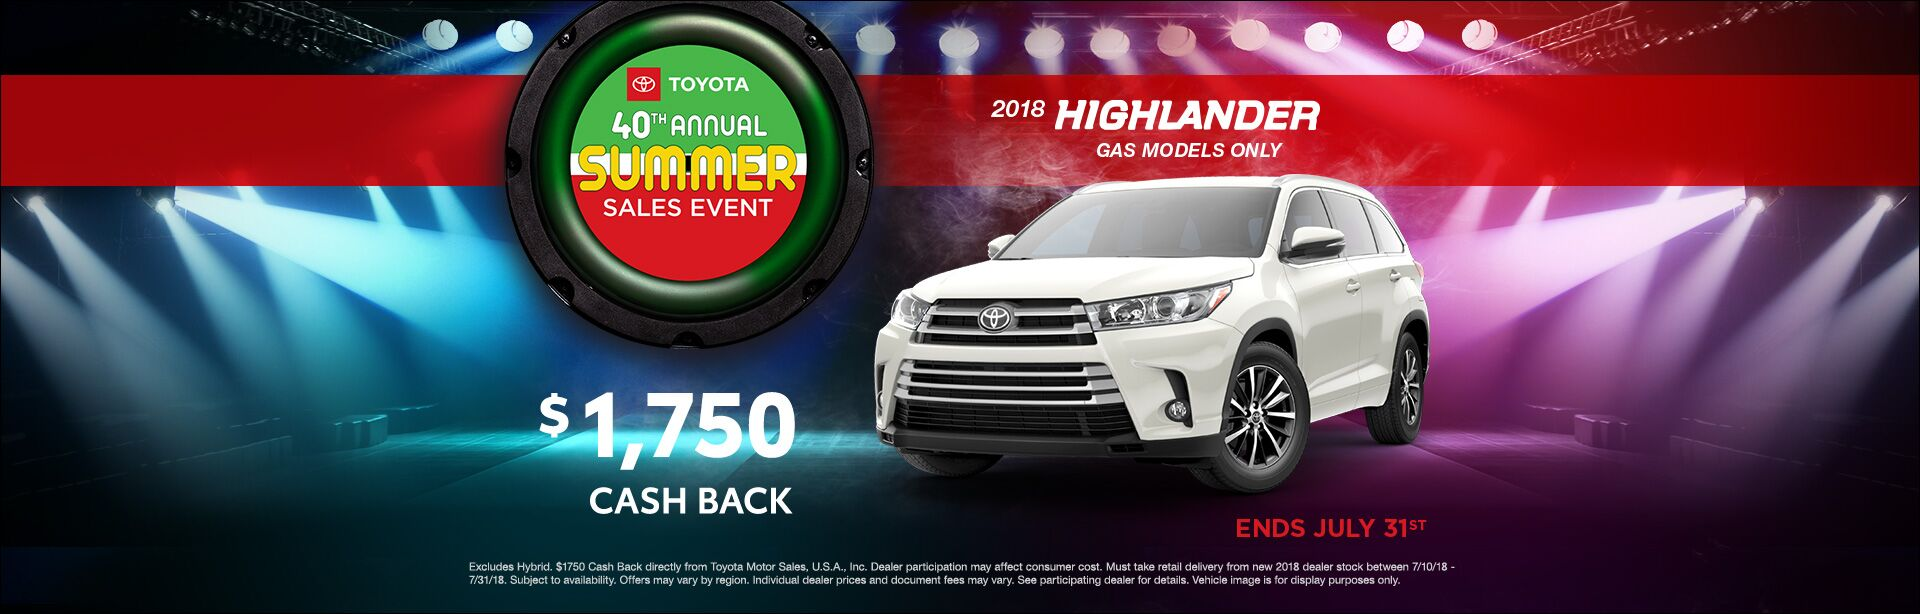 Toyota Summer Sales Event Highlander Cash Back